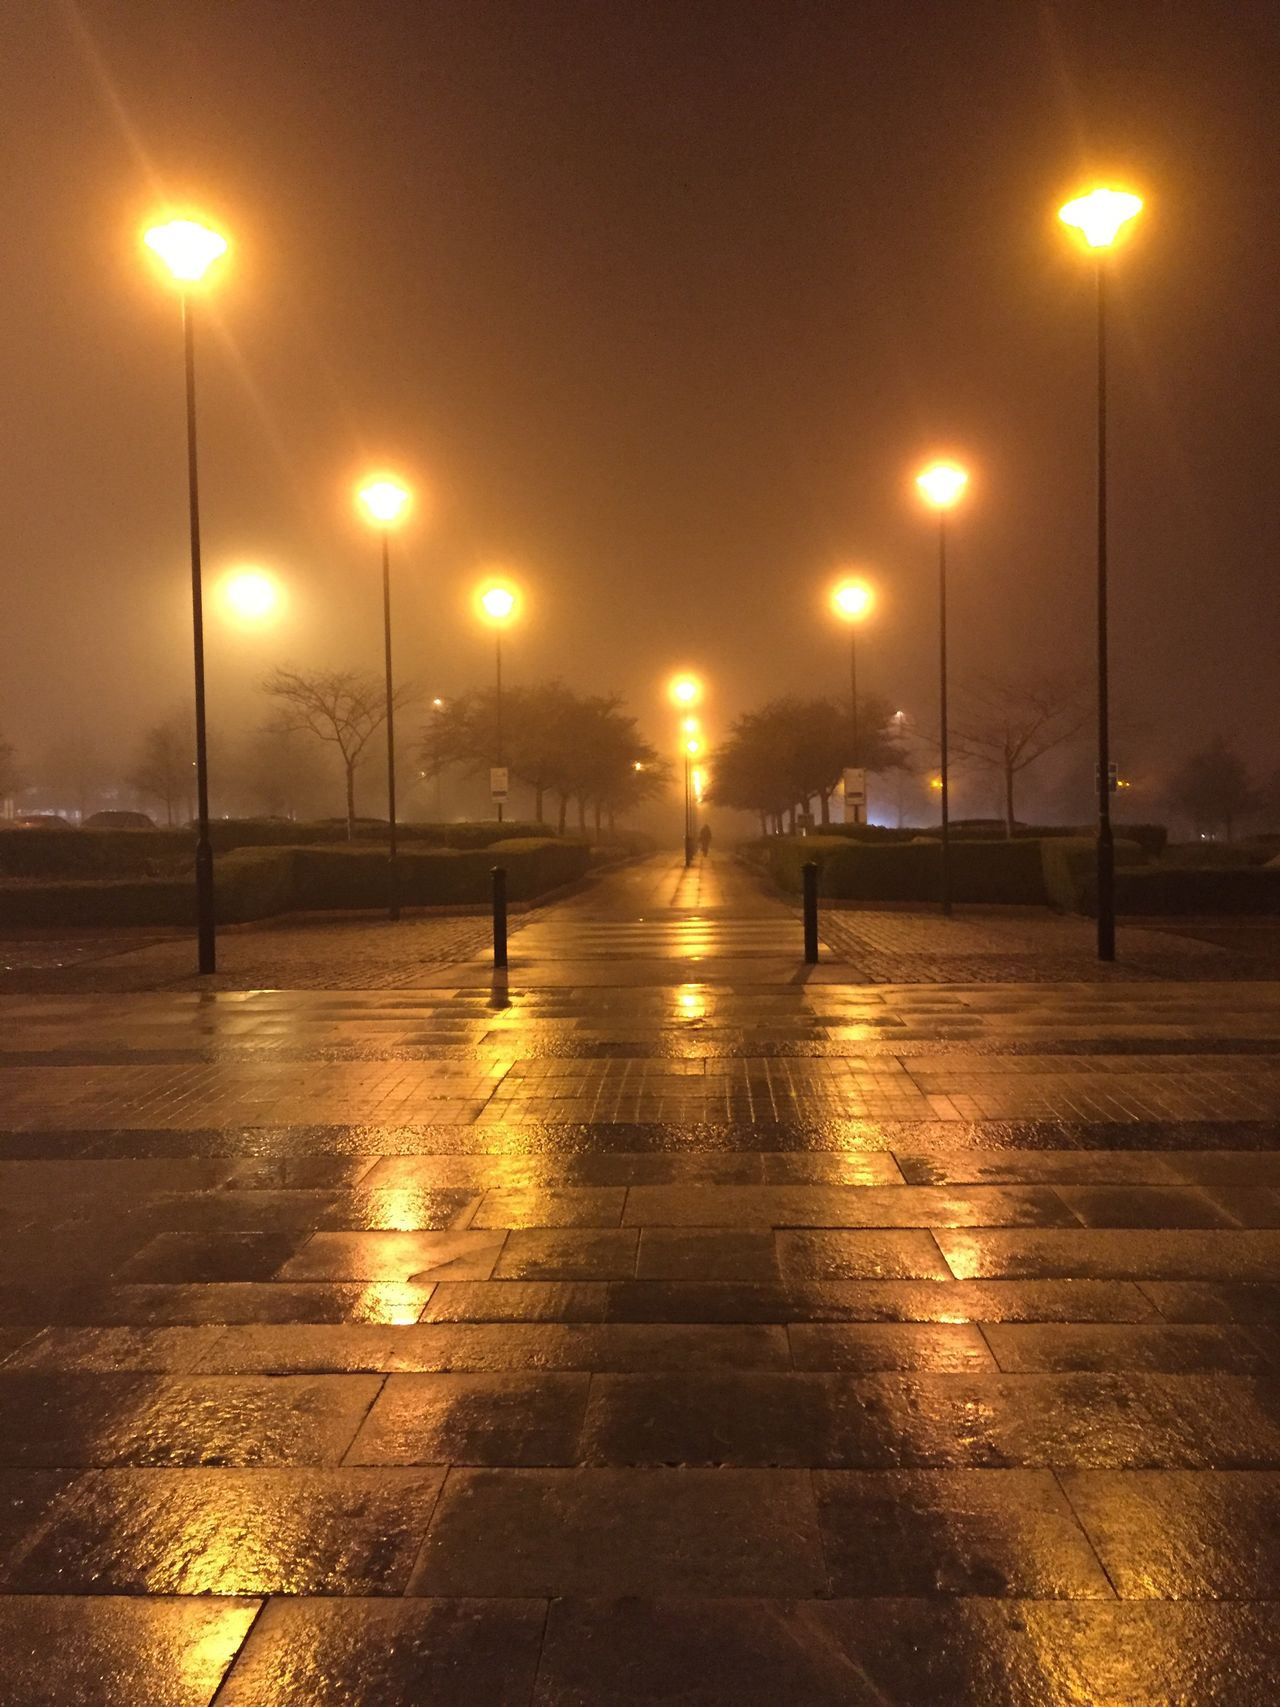 Foggy day Street Light Illuminated Night Reflection Lighting Equipment Wet Real People Outdoors Sky Nature Water One Person Architecture People Fog Foggy Foggy Night Pathway Dark And Foggy IPhoneography Nofilter EyeEm Best Shots Winter Cold Temperature Streetphotography